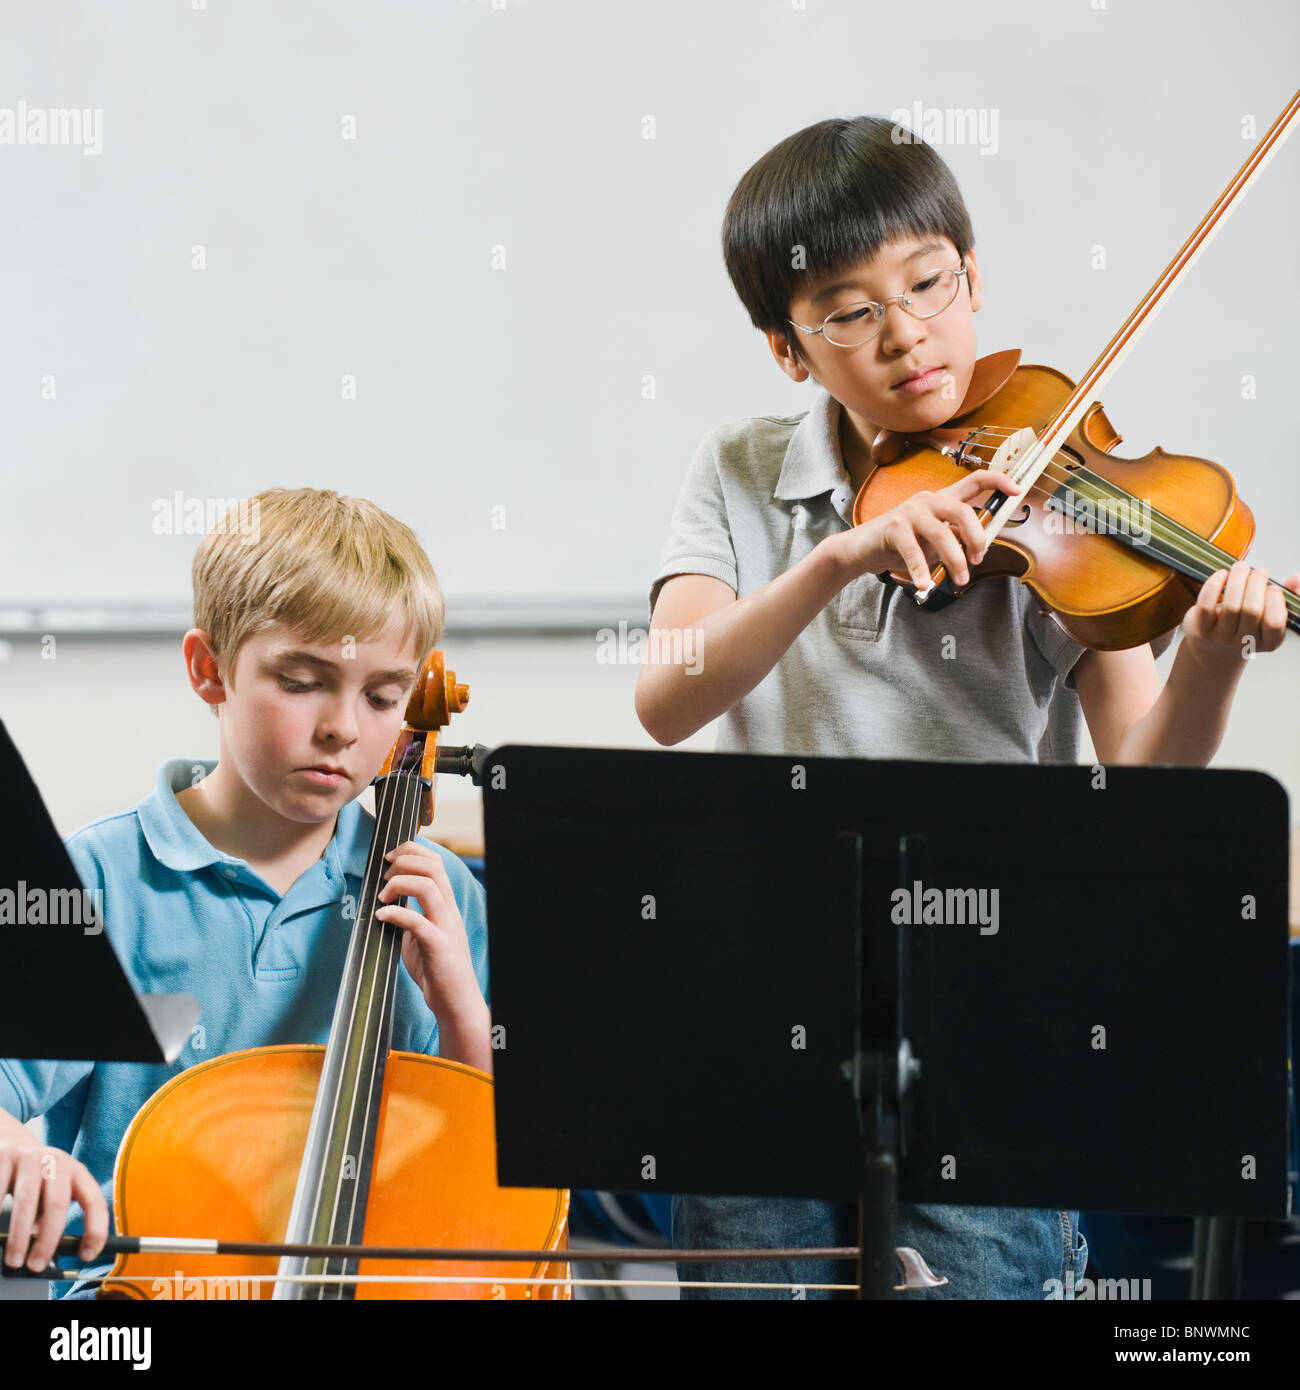 Elementary school students playing instruments in music class - Stock Image